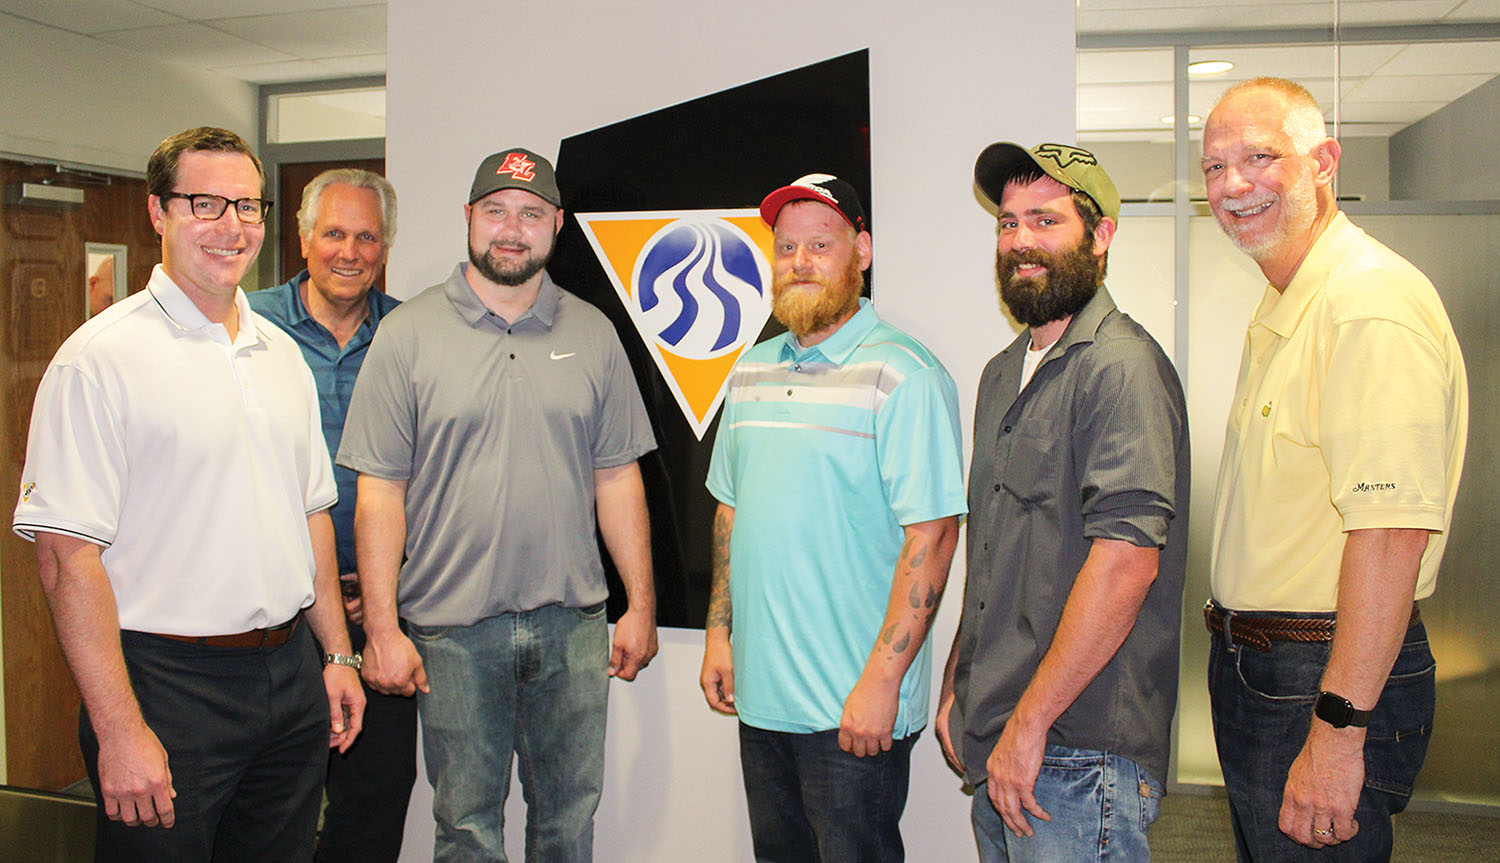 From left: Kyle Buese, executive vice president of operations; Peter Stephaich, CEO and chairman of the board; Capt. James Blake Jr.; Travis Neely, deckhand; Jared Starkey, deckhand; and Mike Monahan, president.